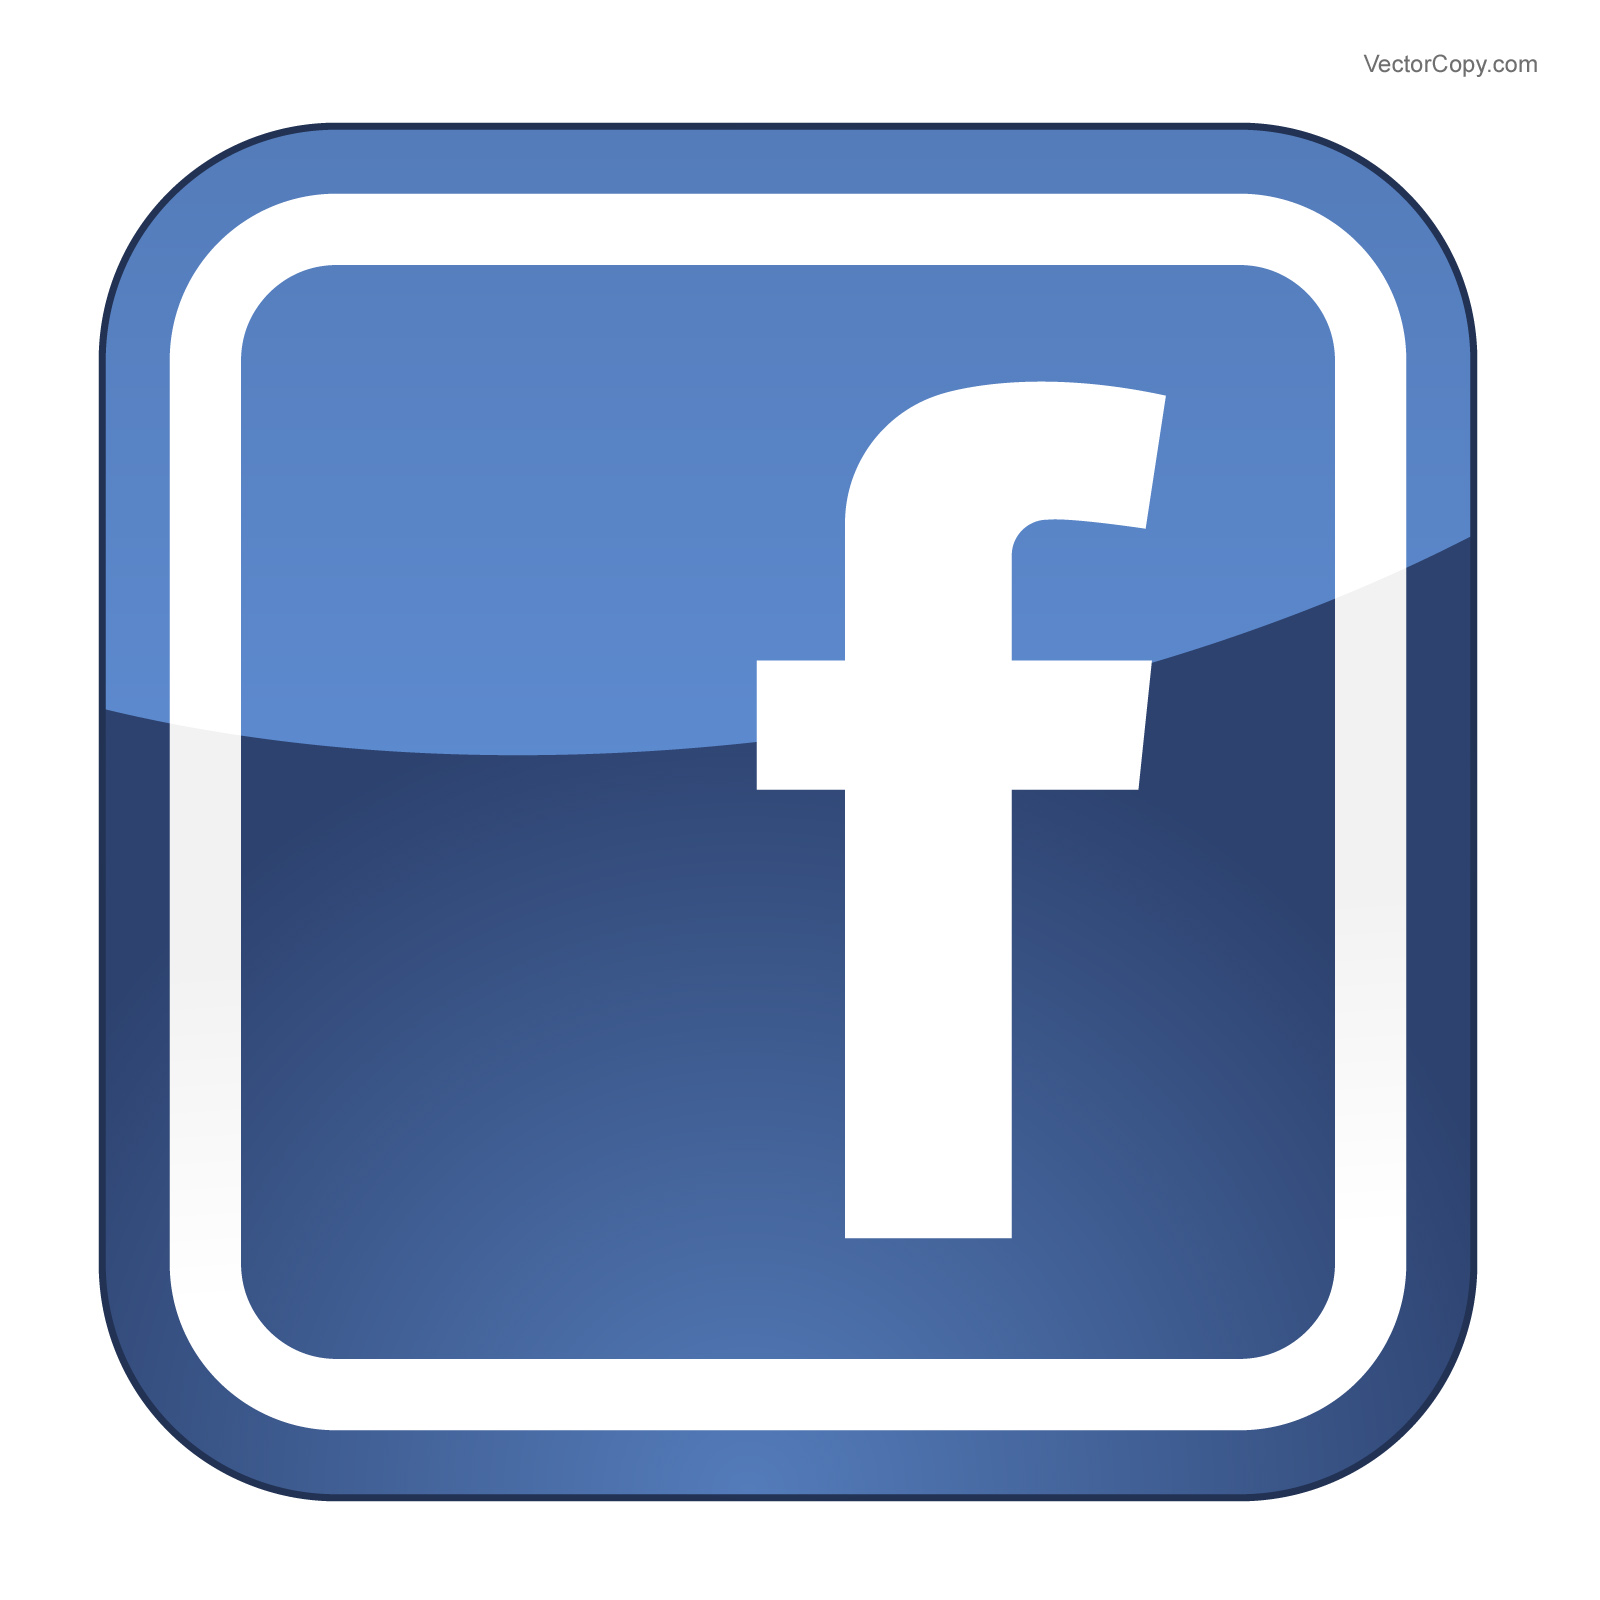 Facebook_logo_vector-2